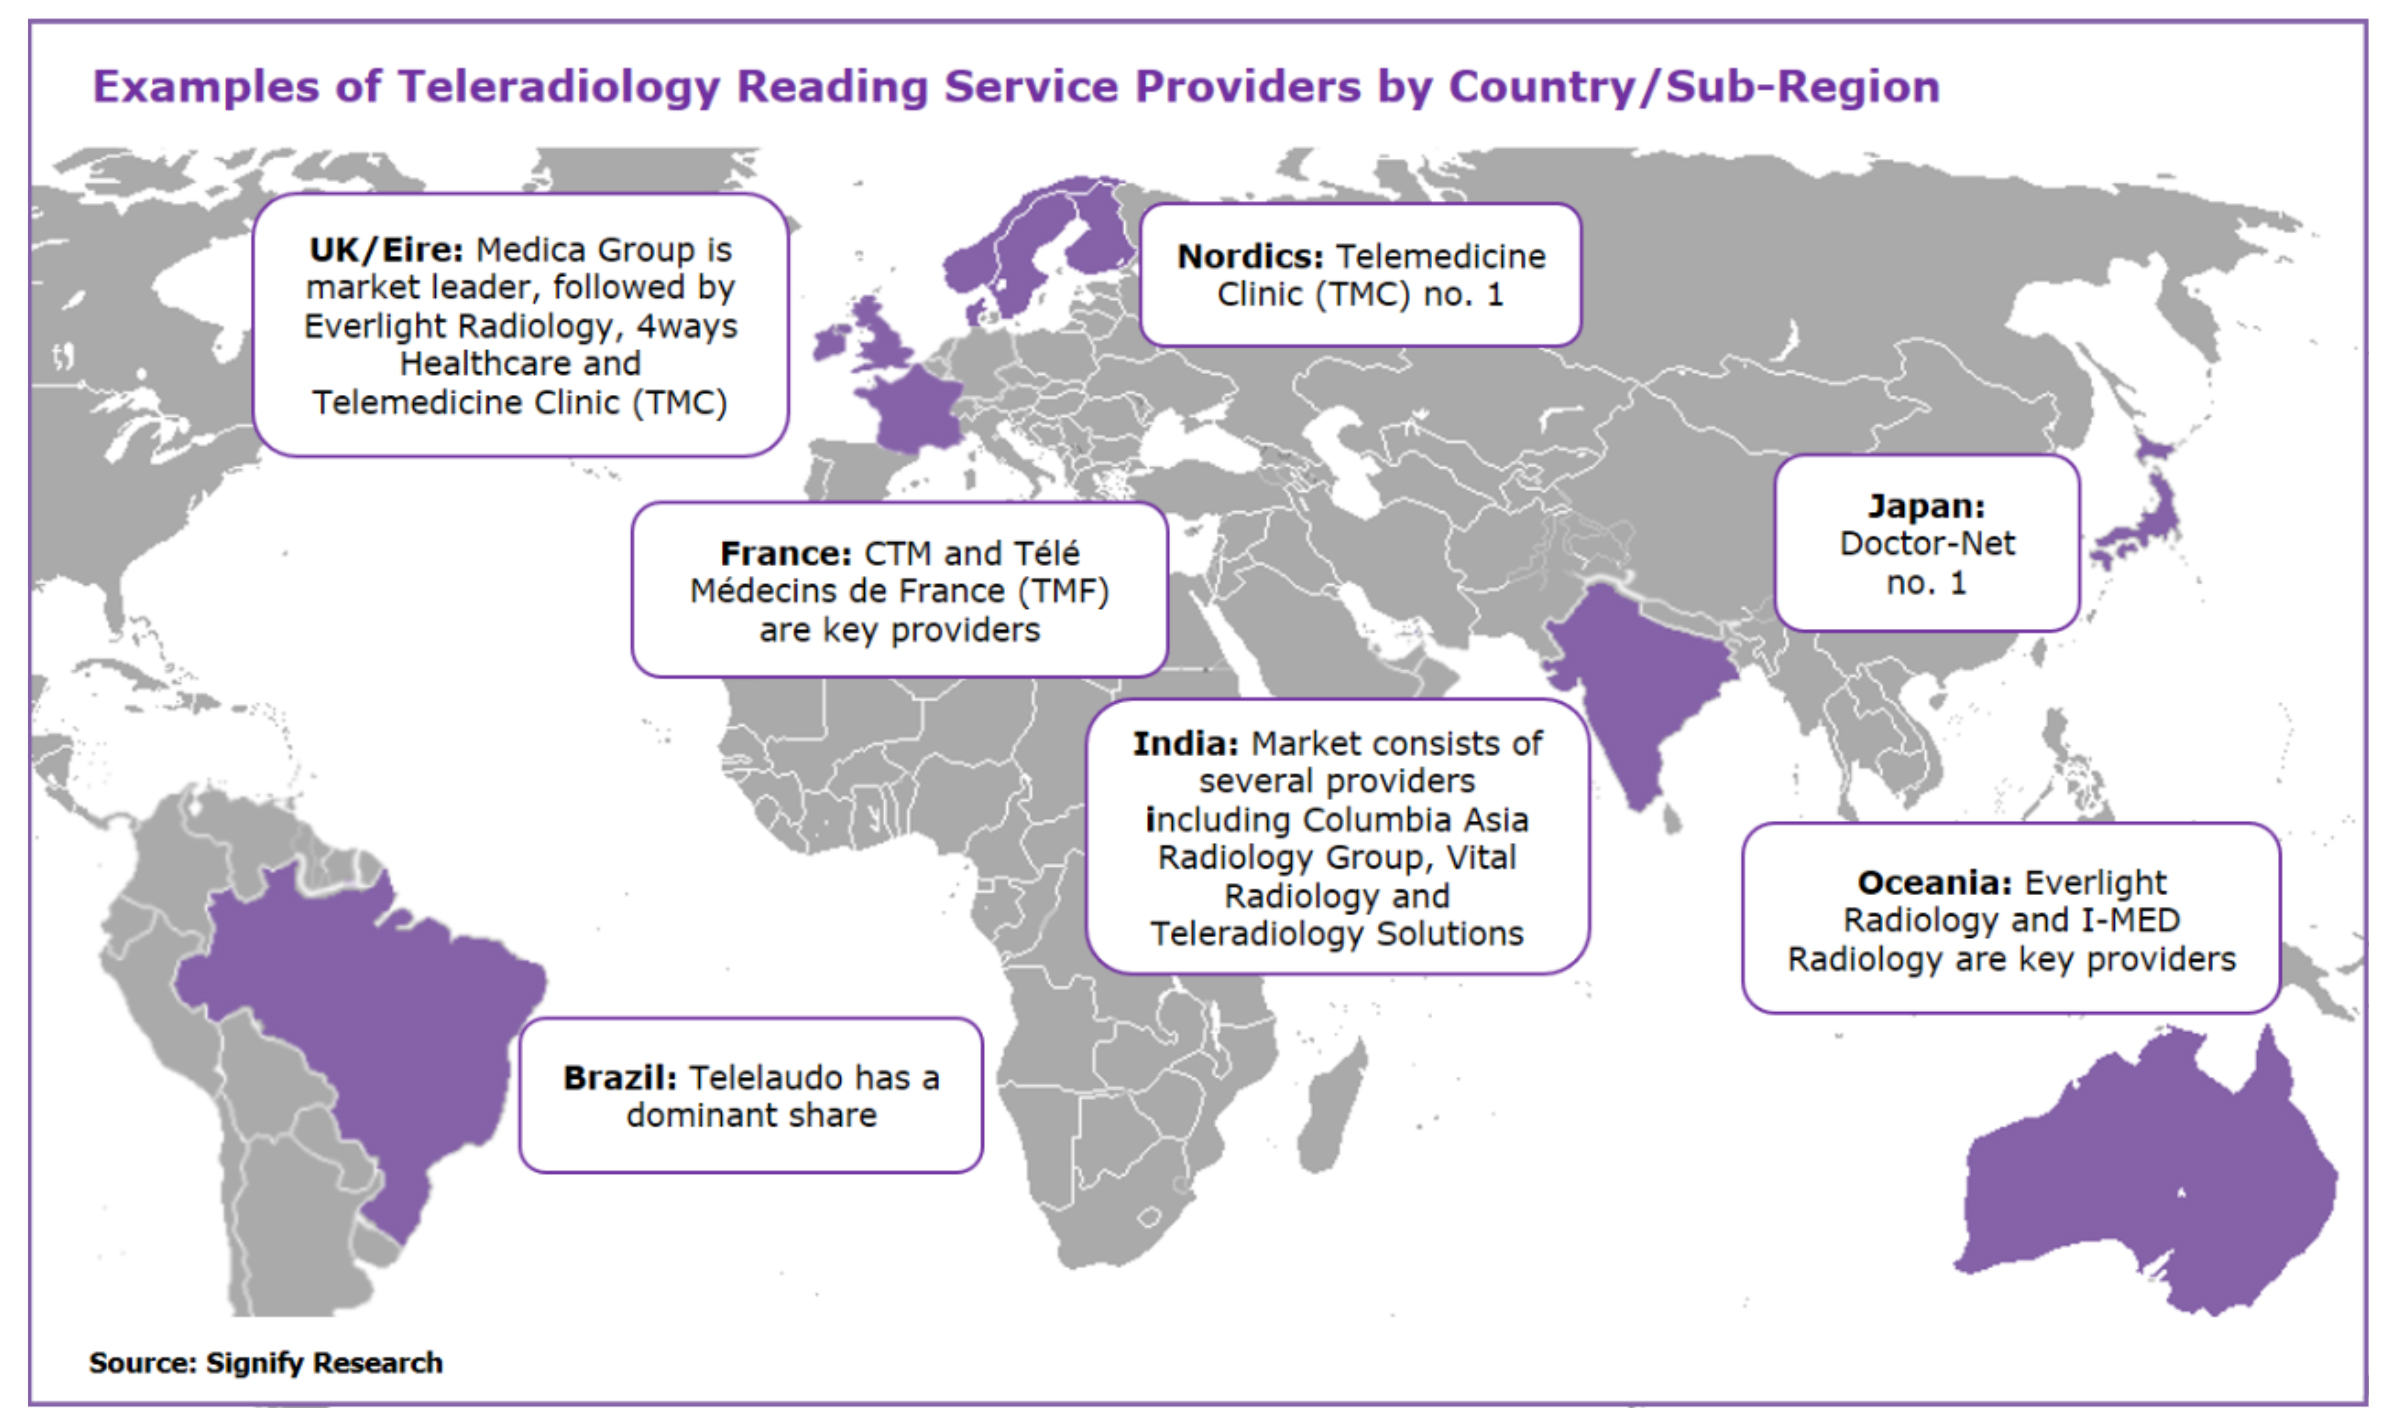 Figure 2. Examples of teleradiology reading service providers.